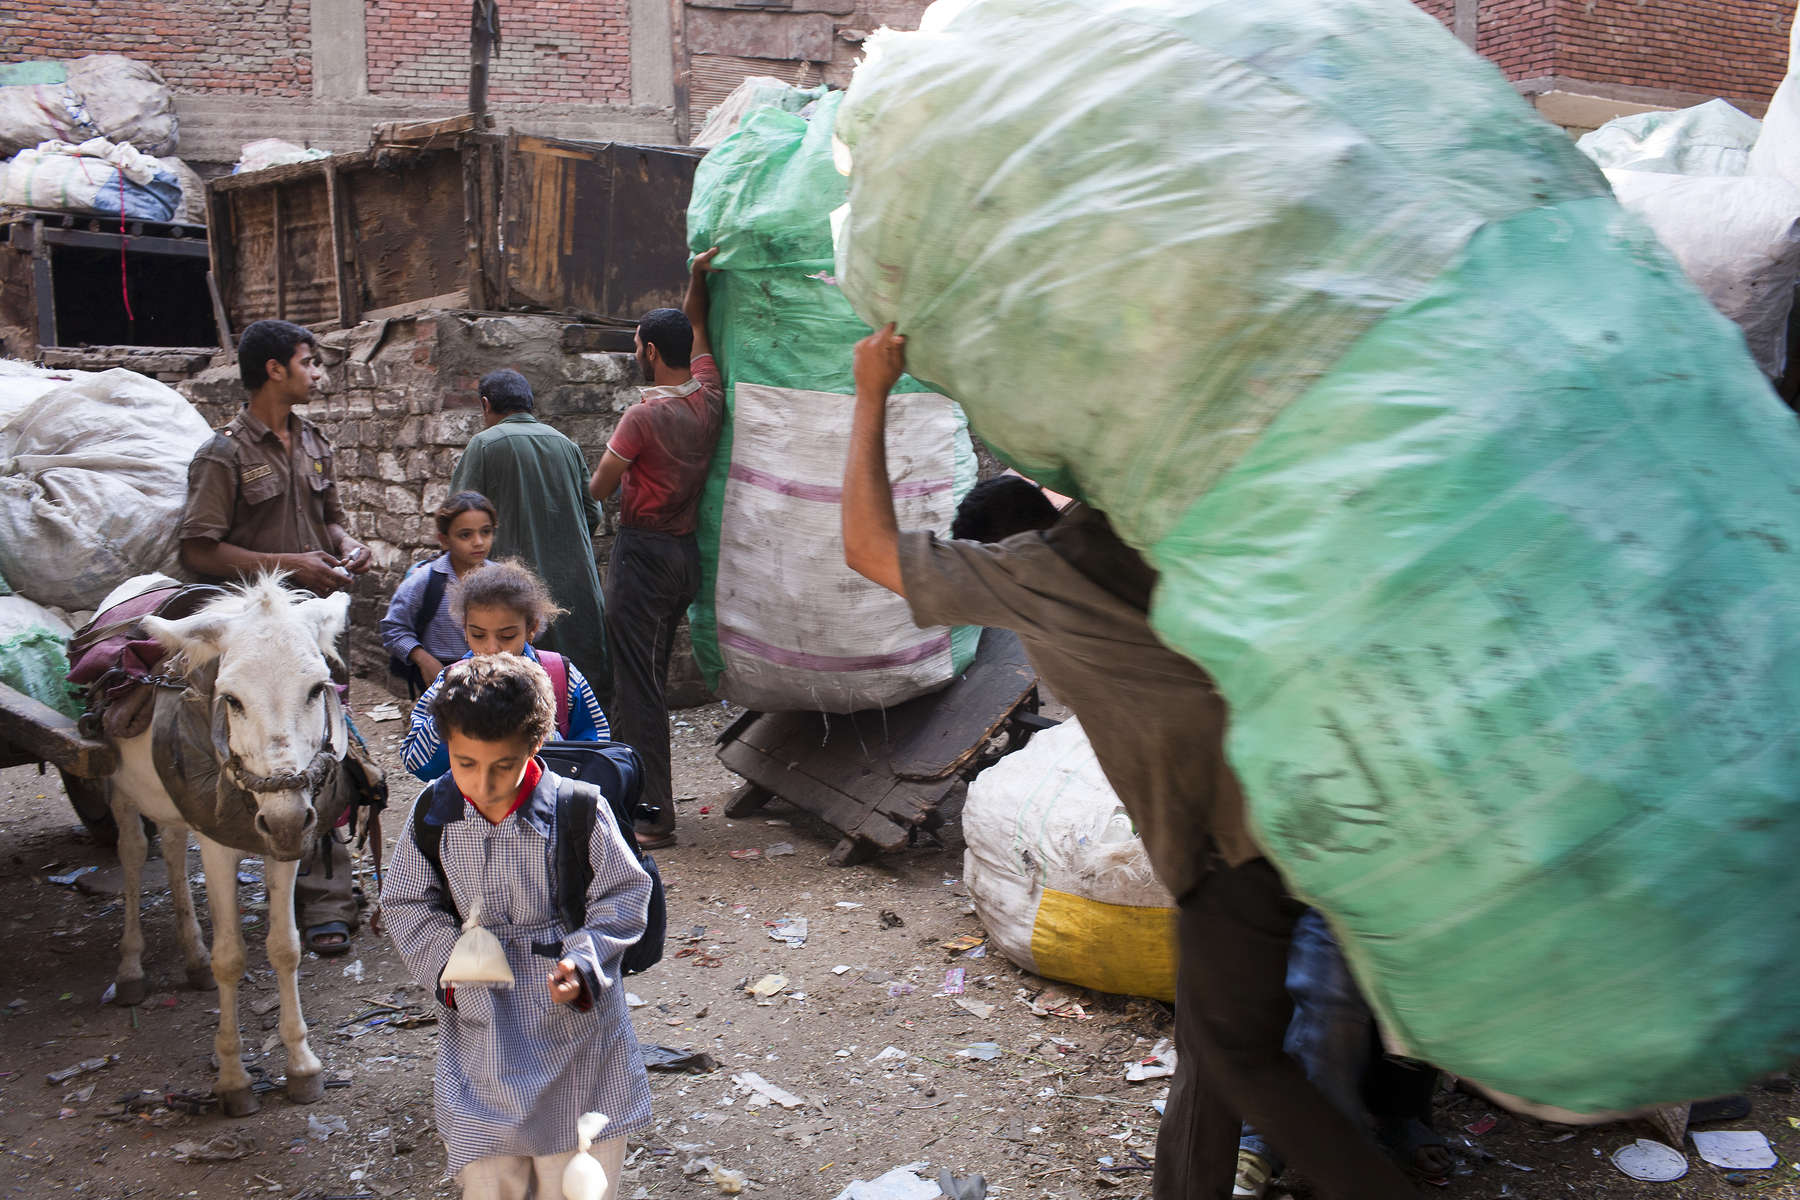 "Zabaleen children make their way to lessons through the tightly packed streets of Moqqatam.Moqqatam is a suburb on the edge of Cairo and home to a people known as the Zabaleen, said to be the world's greatest waste recyclers. The Zabaleen, which means plainly enough, ""the garbage collectors"", pick up around 4,000 tons of Cairo's waste each day. American researchers have shown that the Zabaleen recycle 85% of this garbage into something useful: a higher rate than anywhere else on the planet. The men do two shifts leaving about 4am and again around 9am. The rubbish is taken back to Moqqatam for the women to sit in and sort through. The organic waste is fed to livestock (the Zabaleen are originally swine herders), the rest sorted for recycling. The future of the Zabaleen is uncertain: if the Cairo authorities get their way, this community of around 25,000 Coptic Christians living in a Muslim country will be gone, and with it, their unique lifestyle."